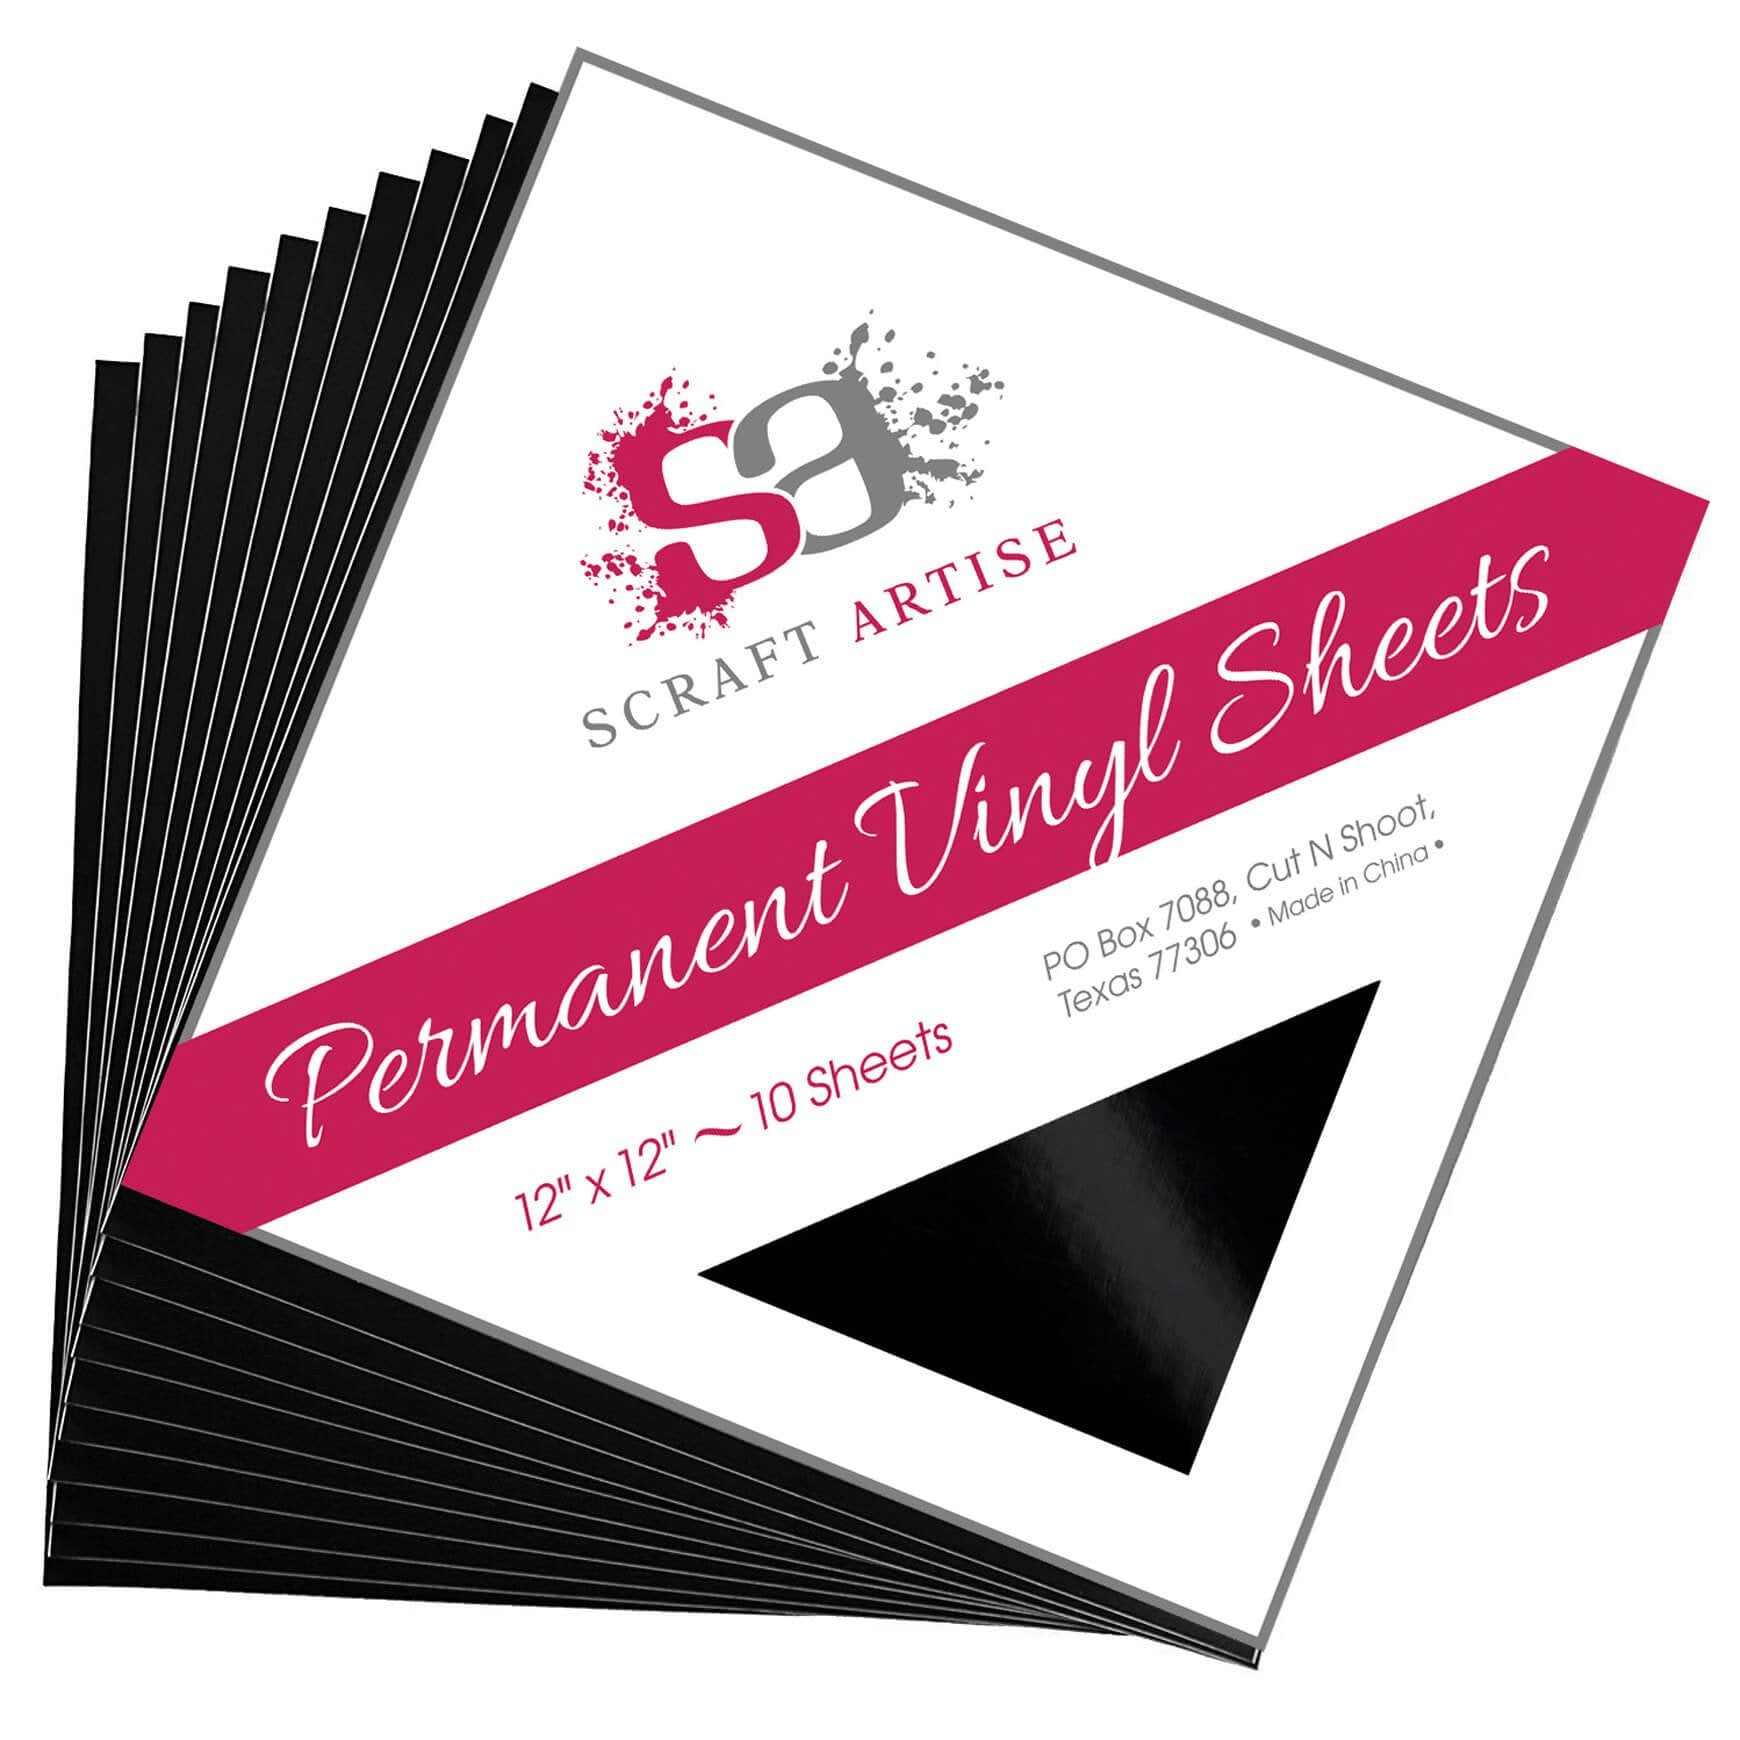 Scraft Artise Black Glossy Permanent Adhesive Craft Vinyl 12 x 12 Sheets - 10 Pack